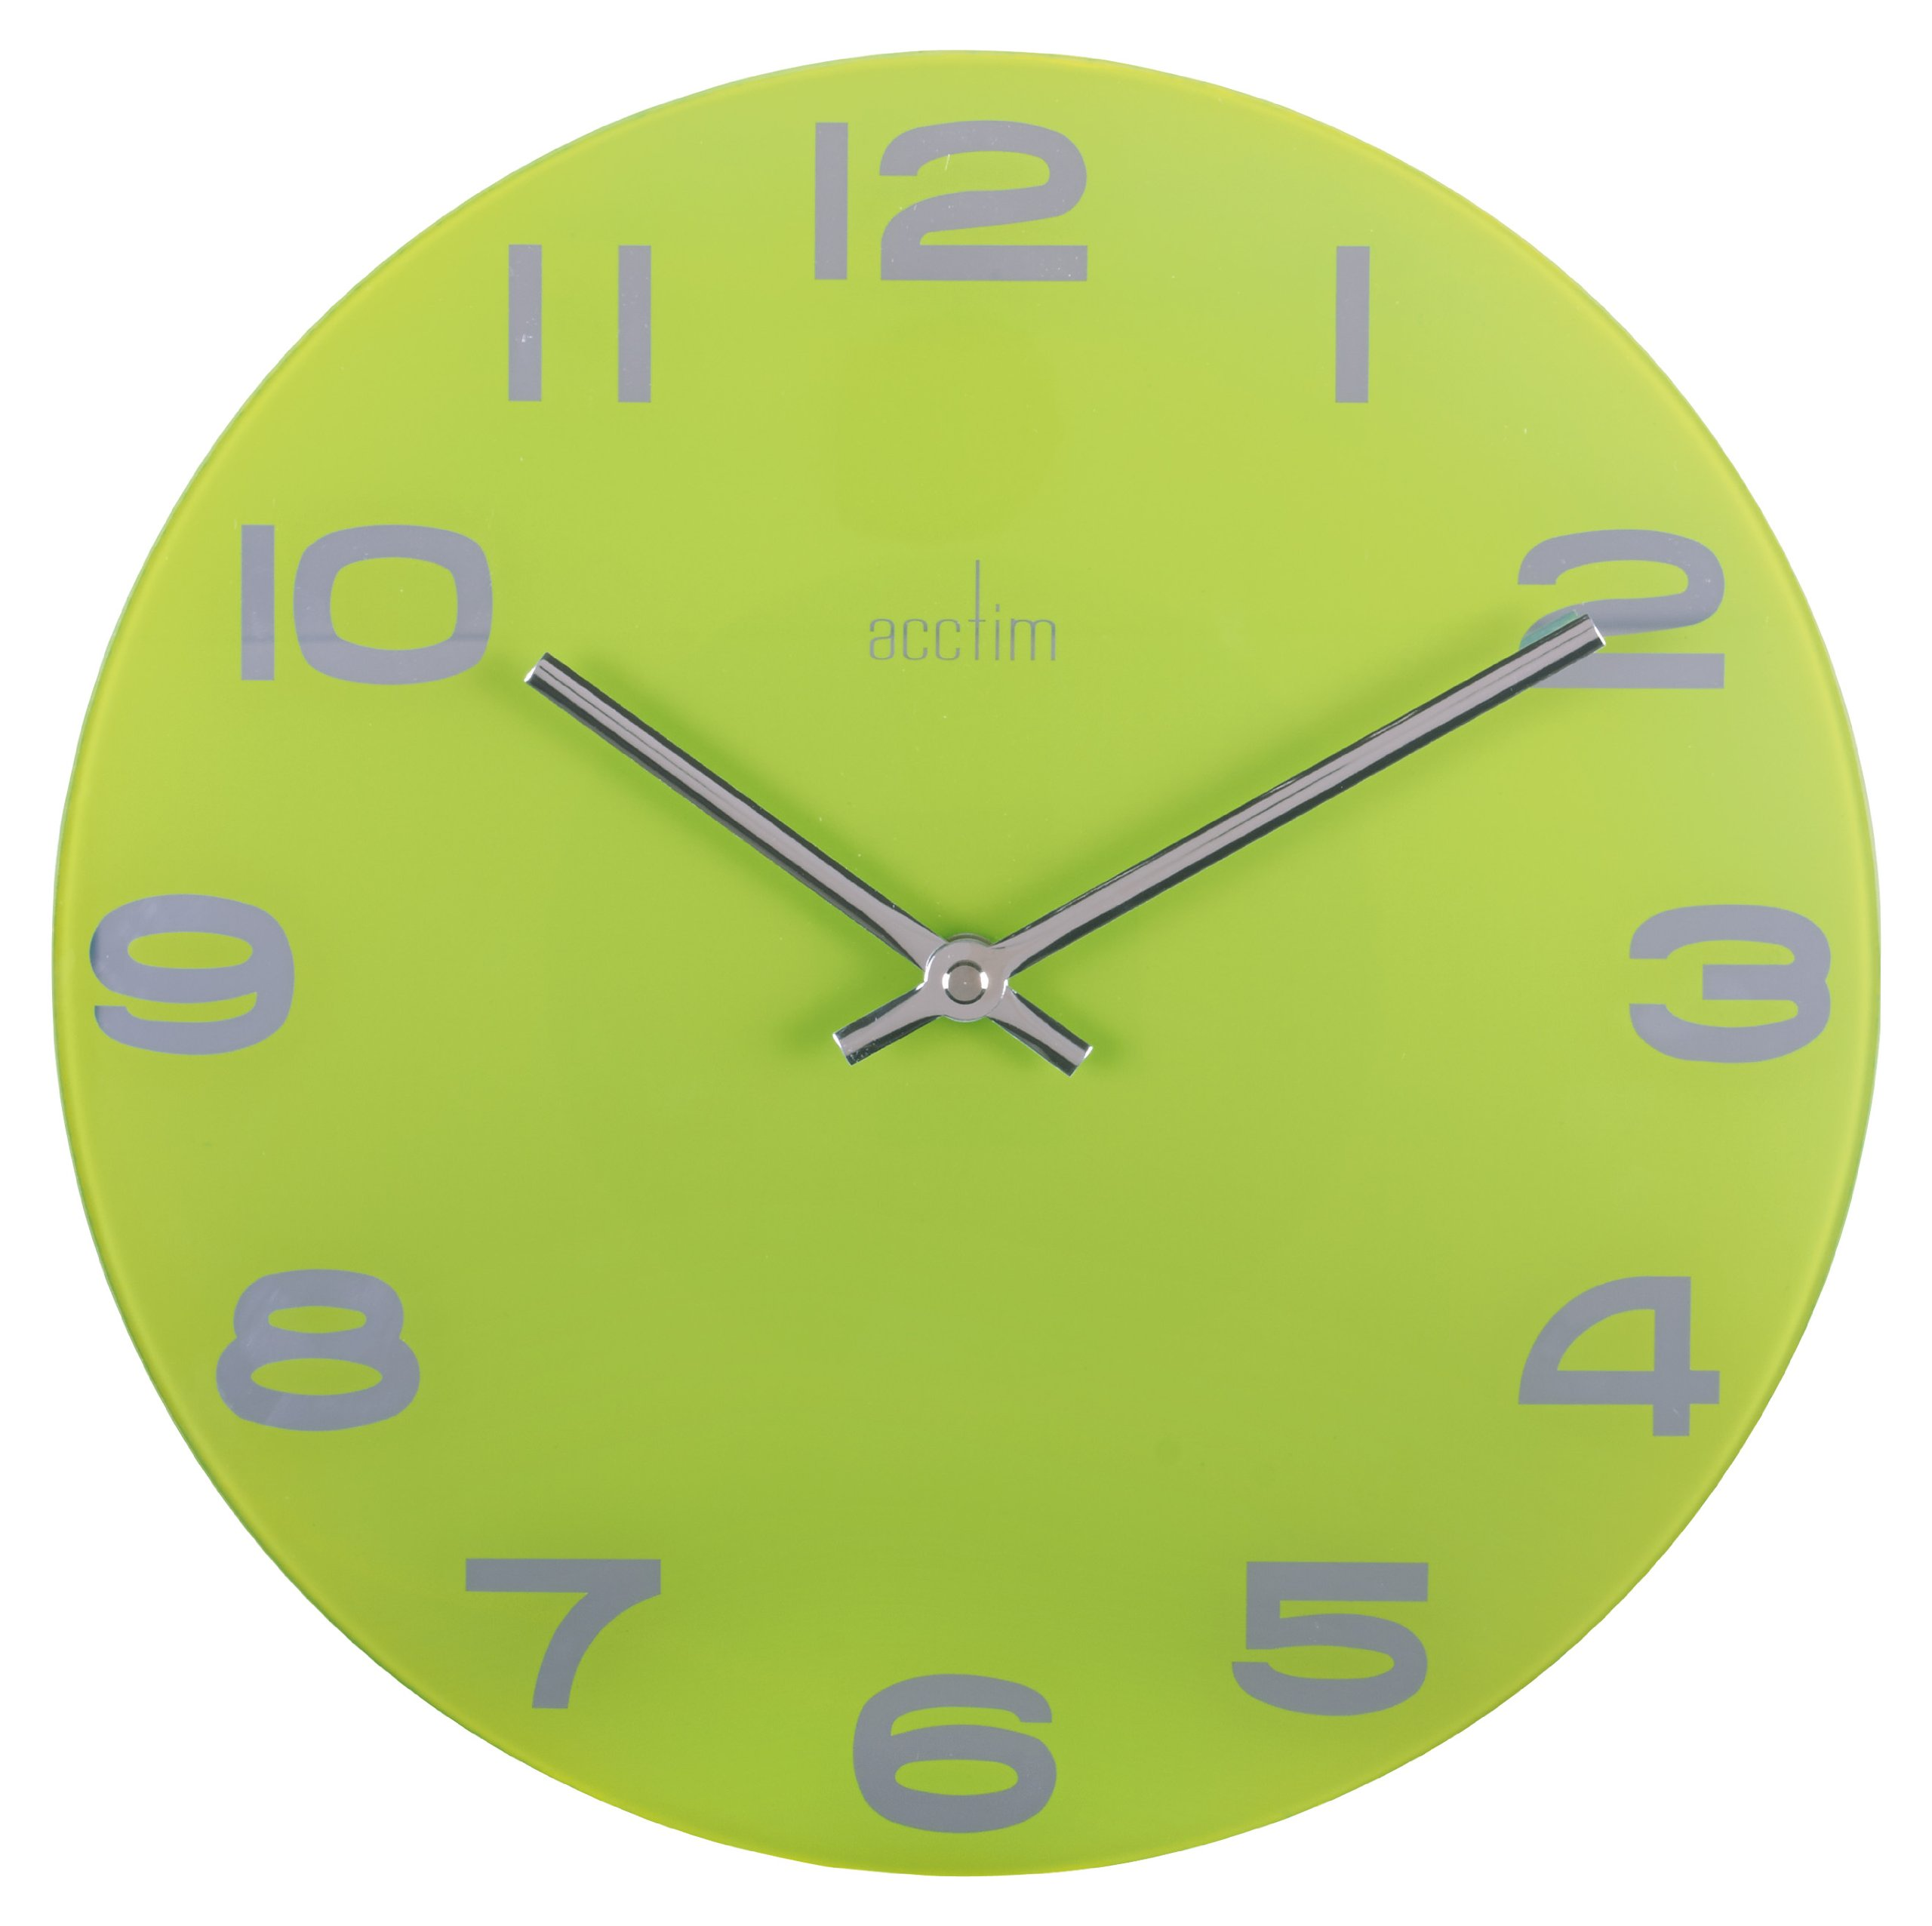 Acctim Mika Glass Wall Clock 30cm Lime - Lime green coloured glass wall clock Mirrored arabic dial Metal hands - wall-clocks, living-room-decor, living-room - 719z yBCykL -